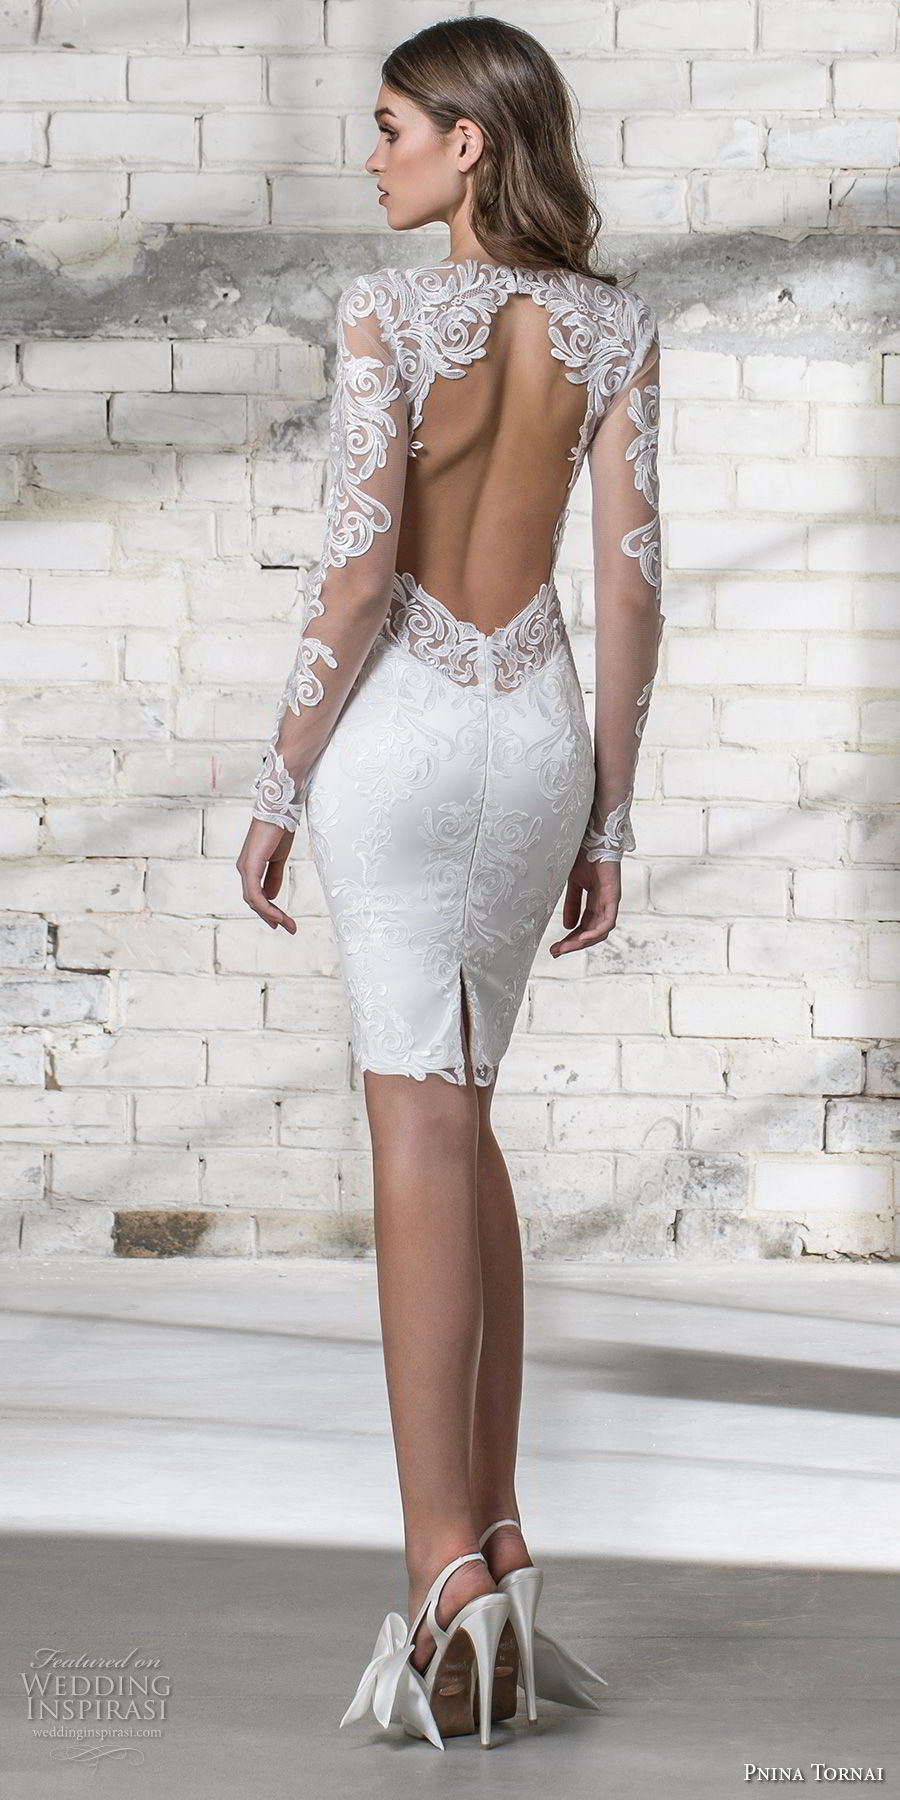 pnina tornai 2019 love bridal long sleeves v neck full embellishment modern romantic above the knee short wedding dress miniskirt keyhole back (12) bv